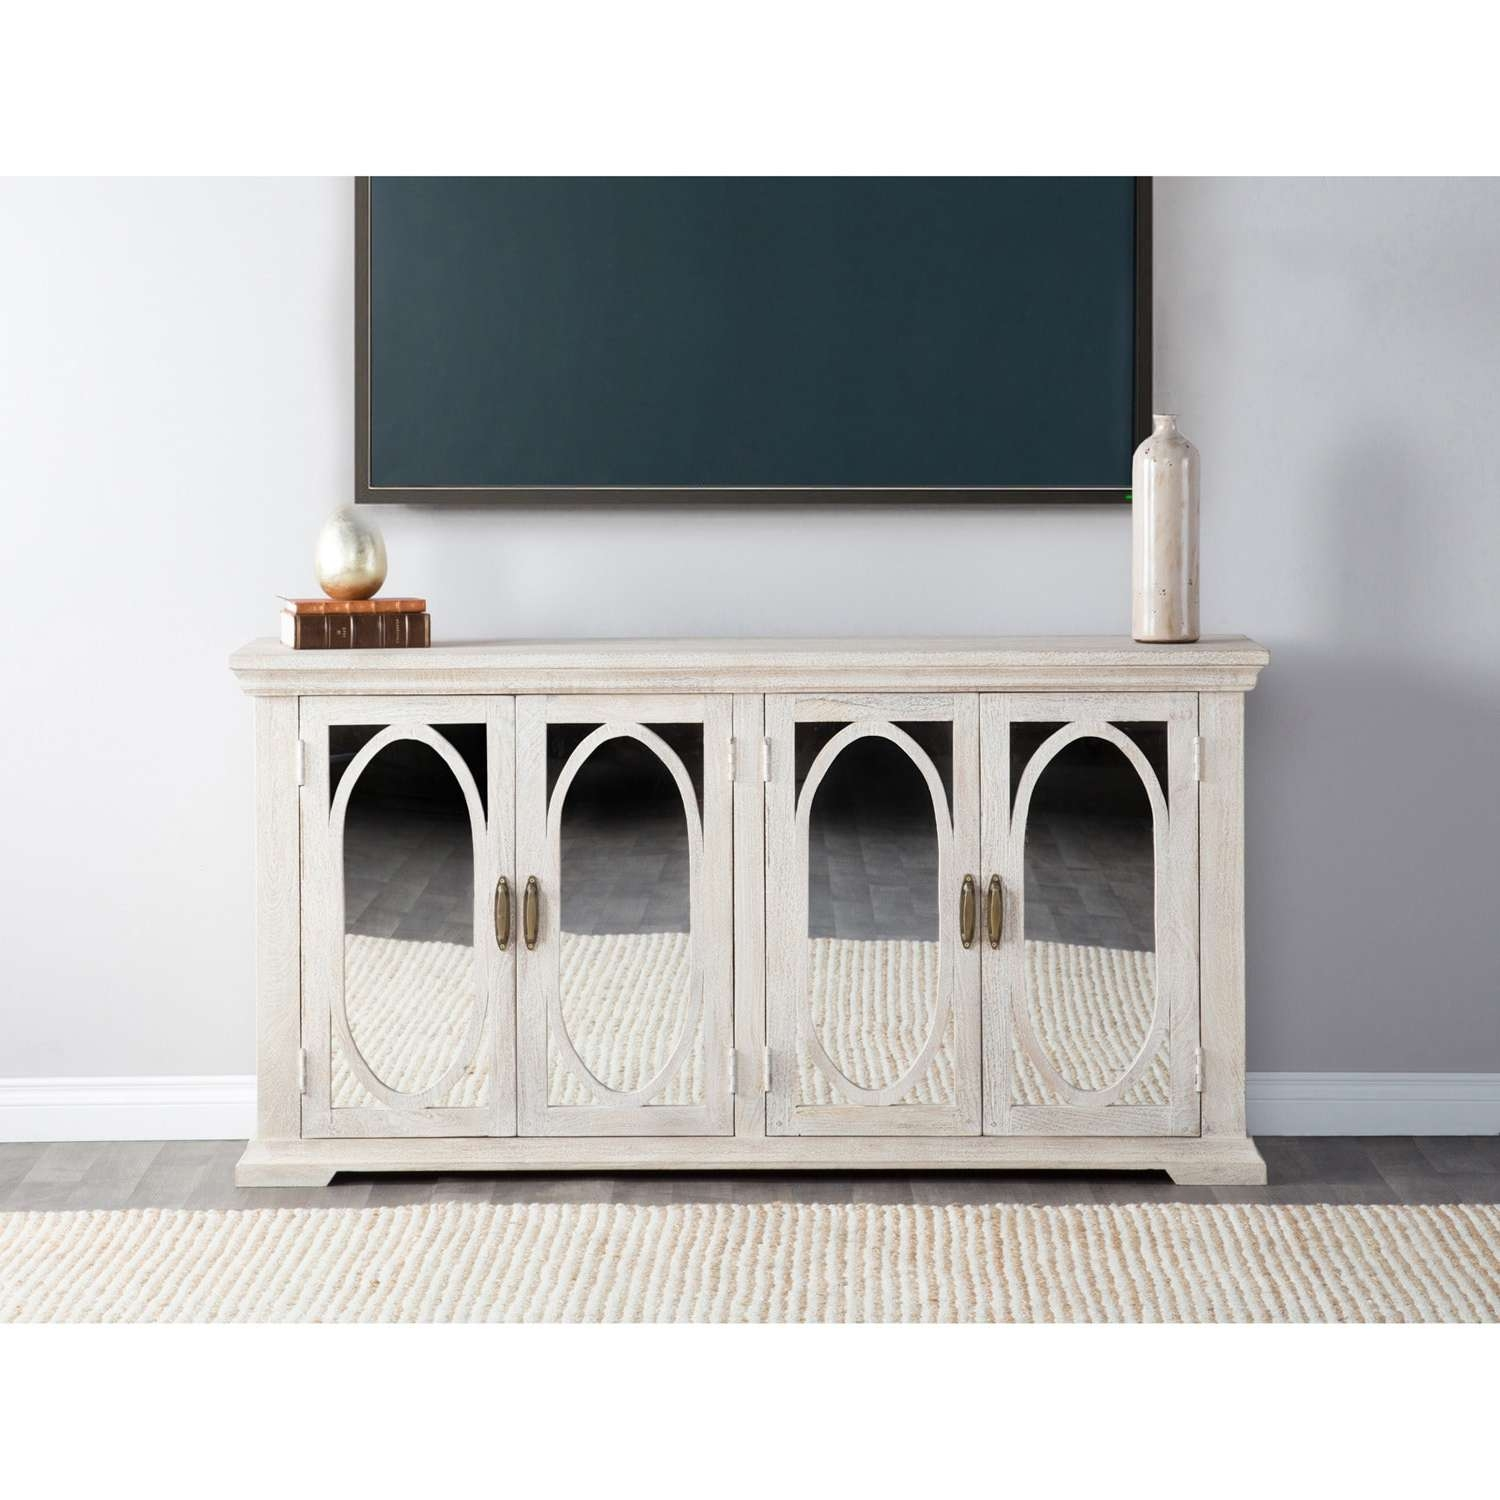 Manchester Wood Mirrored 70 Inch Sideboardkosas Home – Free Throughout 70 Inch Sideboards (View 12 of 20)